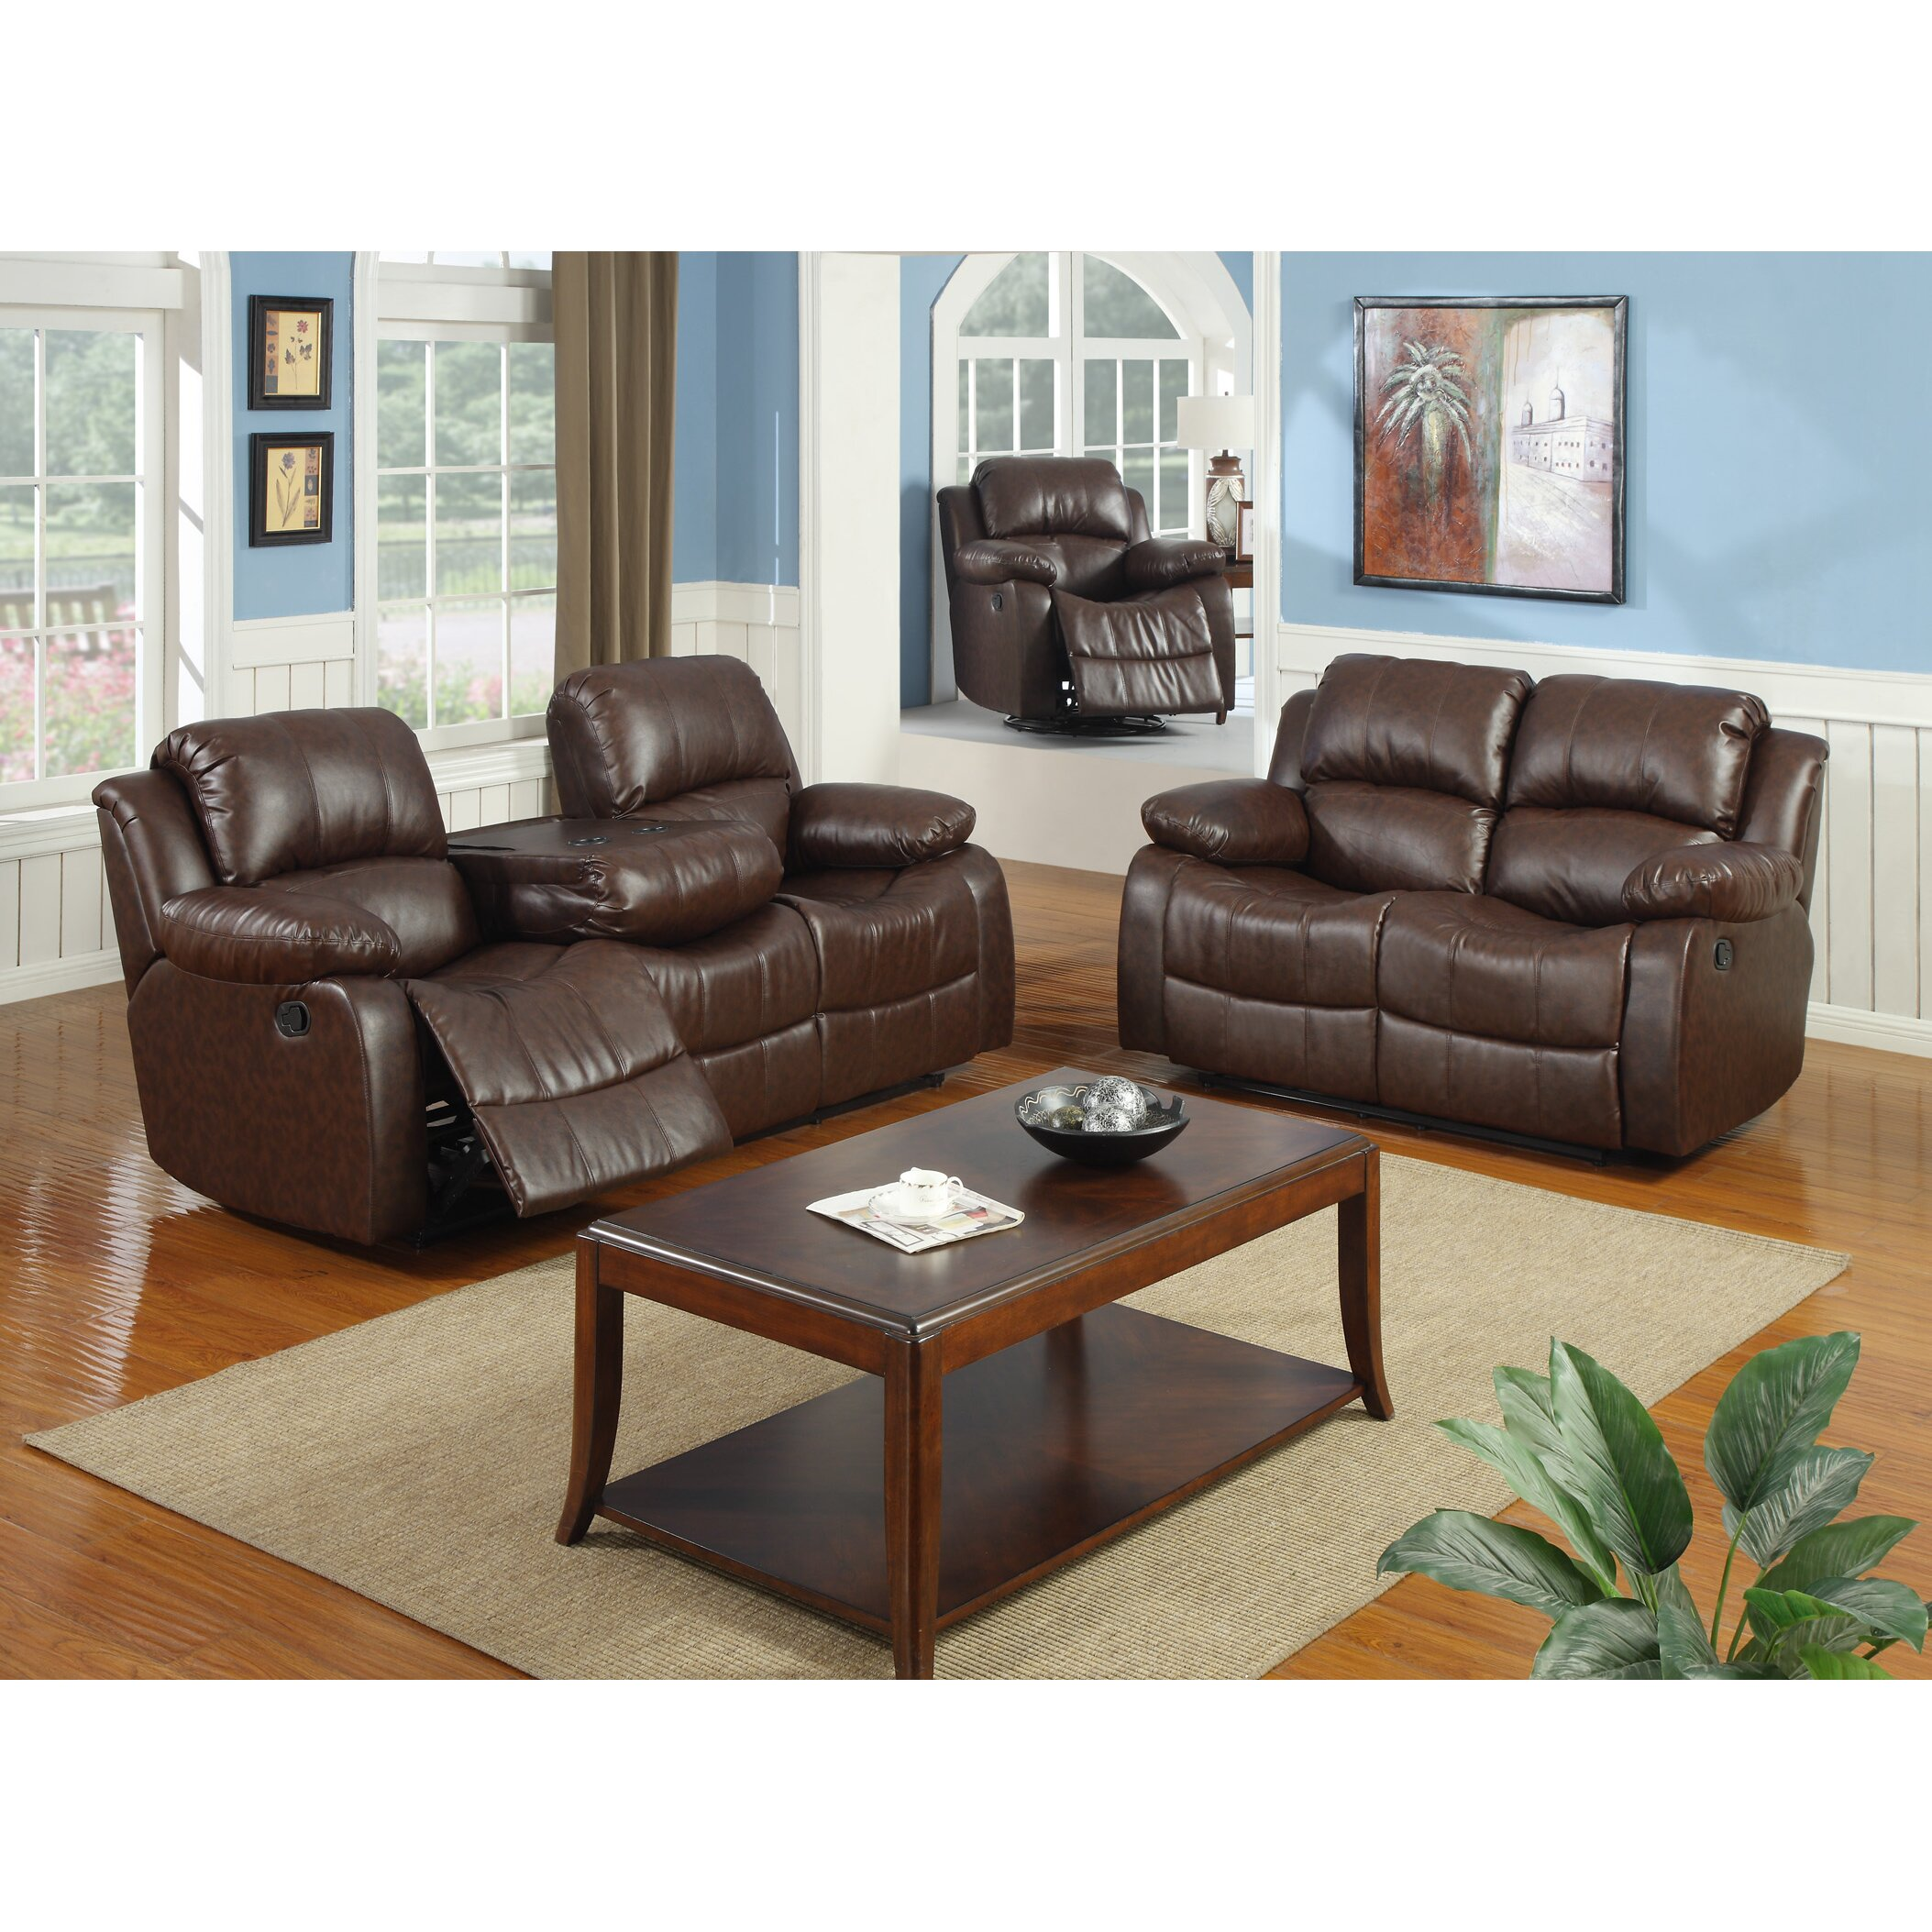 Best quality furniture bonded leather 3 piece recliner for In living furniture